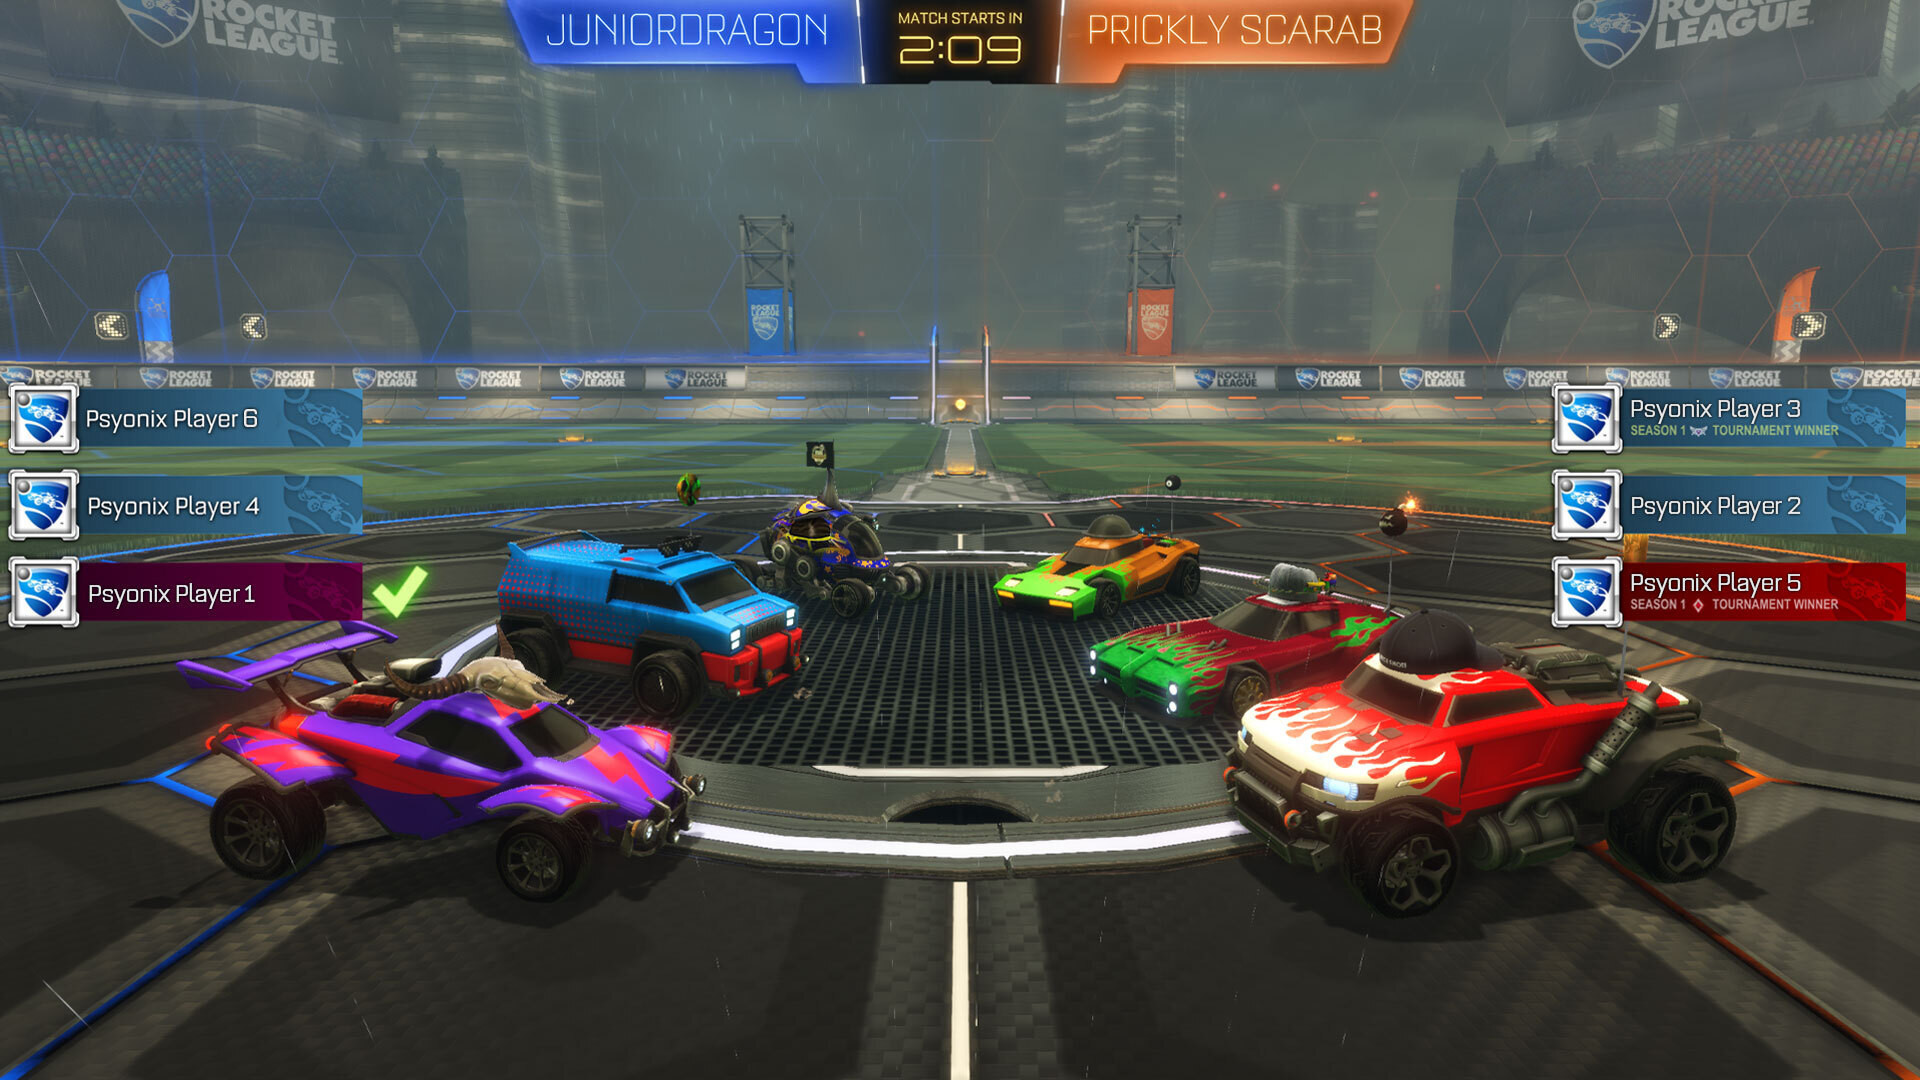 Screenshot 1 - Rocket League